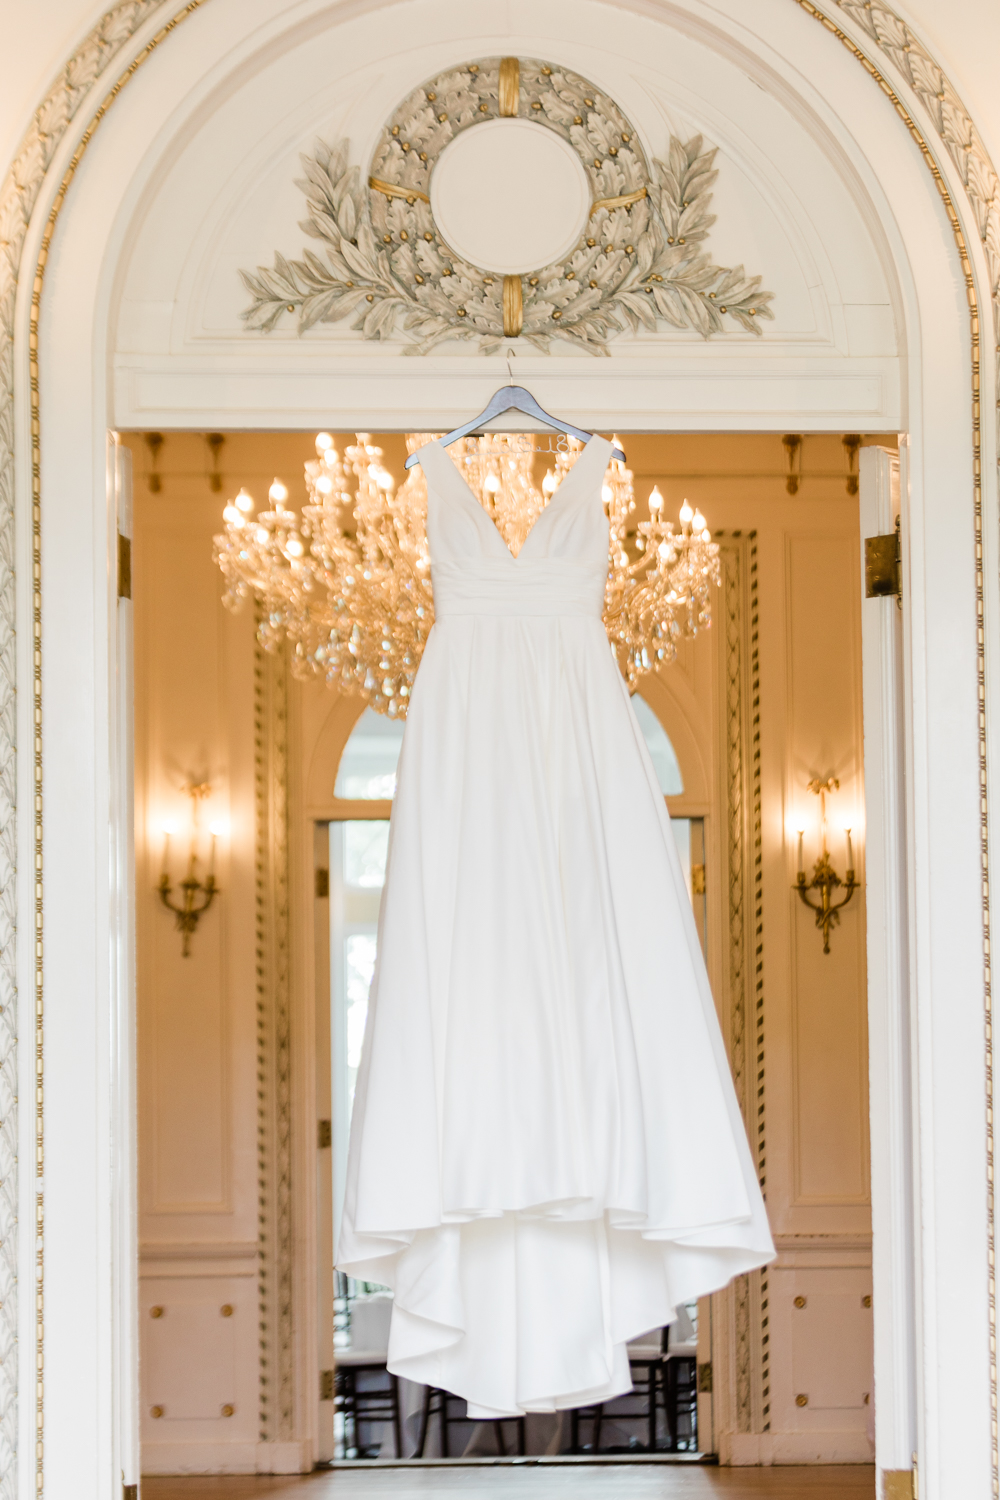 Beautiful wedding dress hanging in doorway